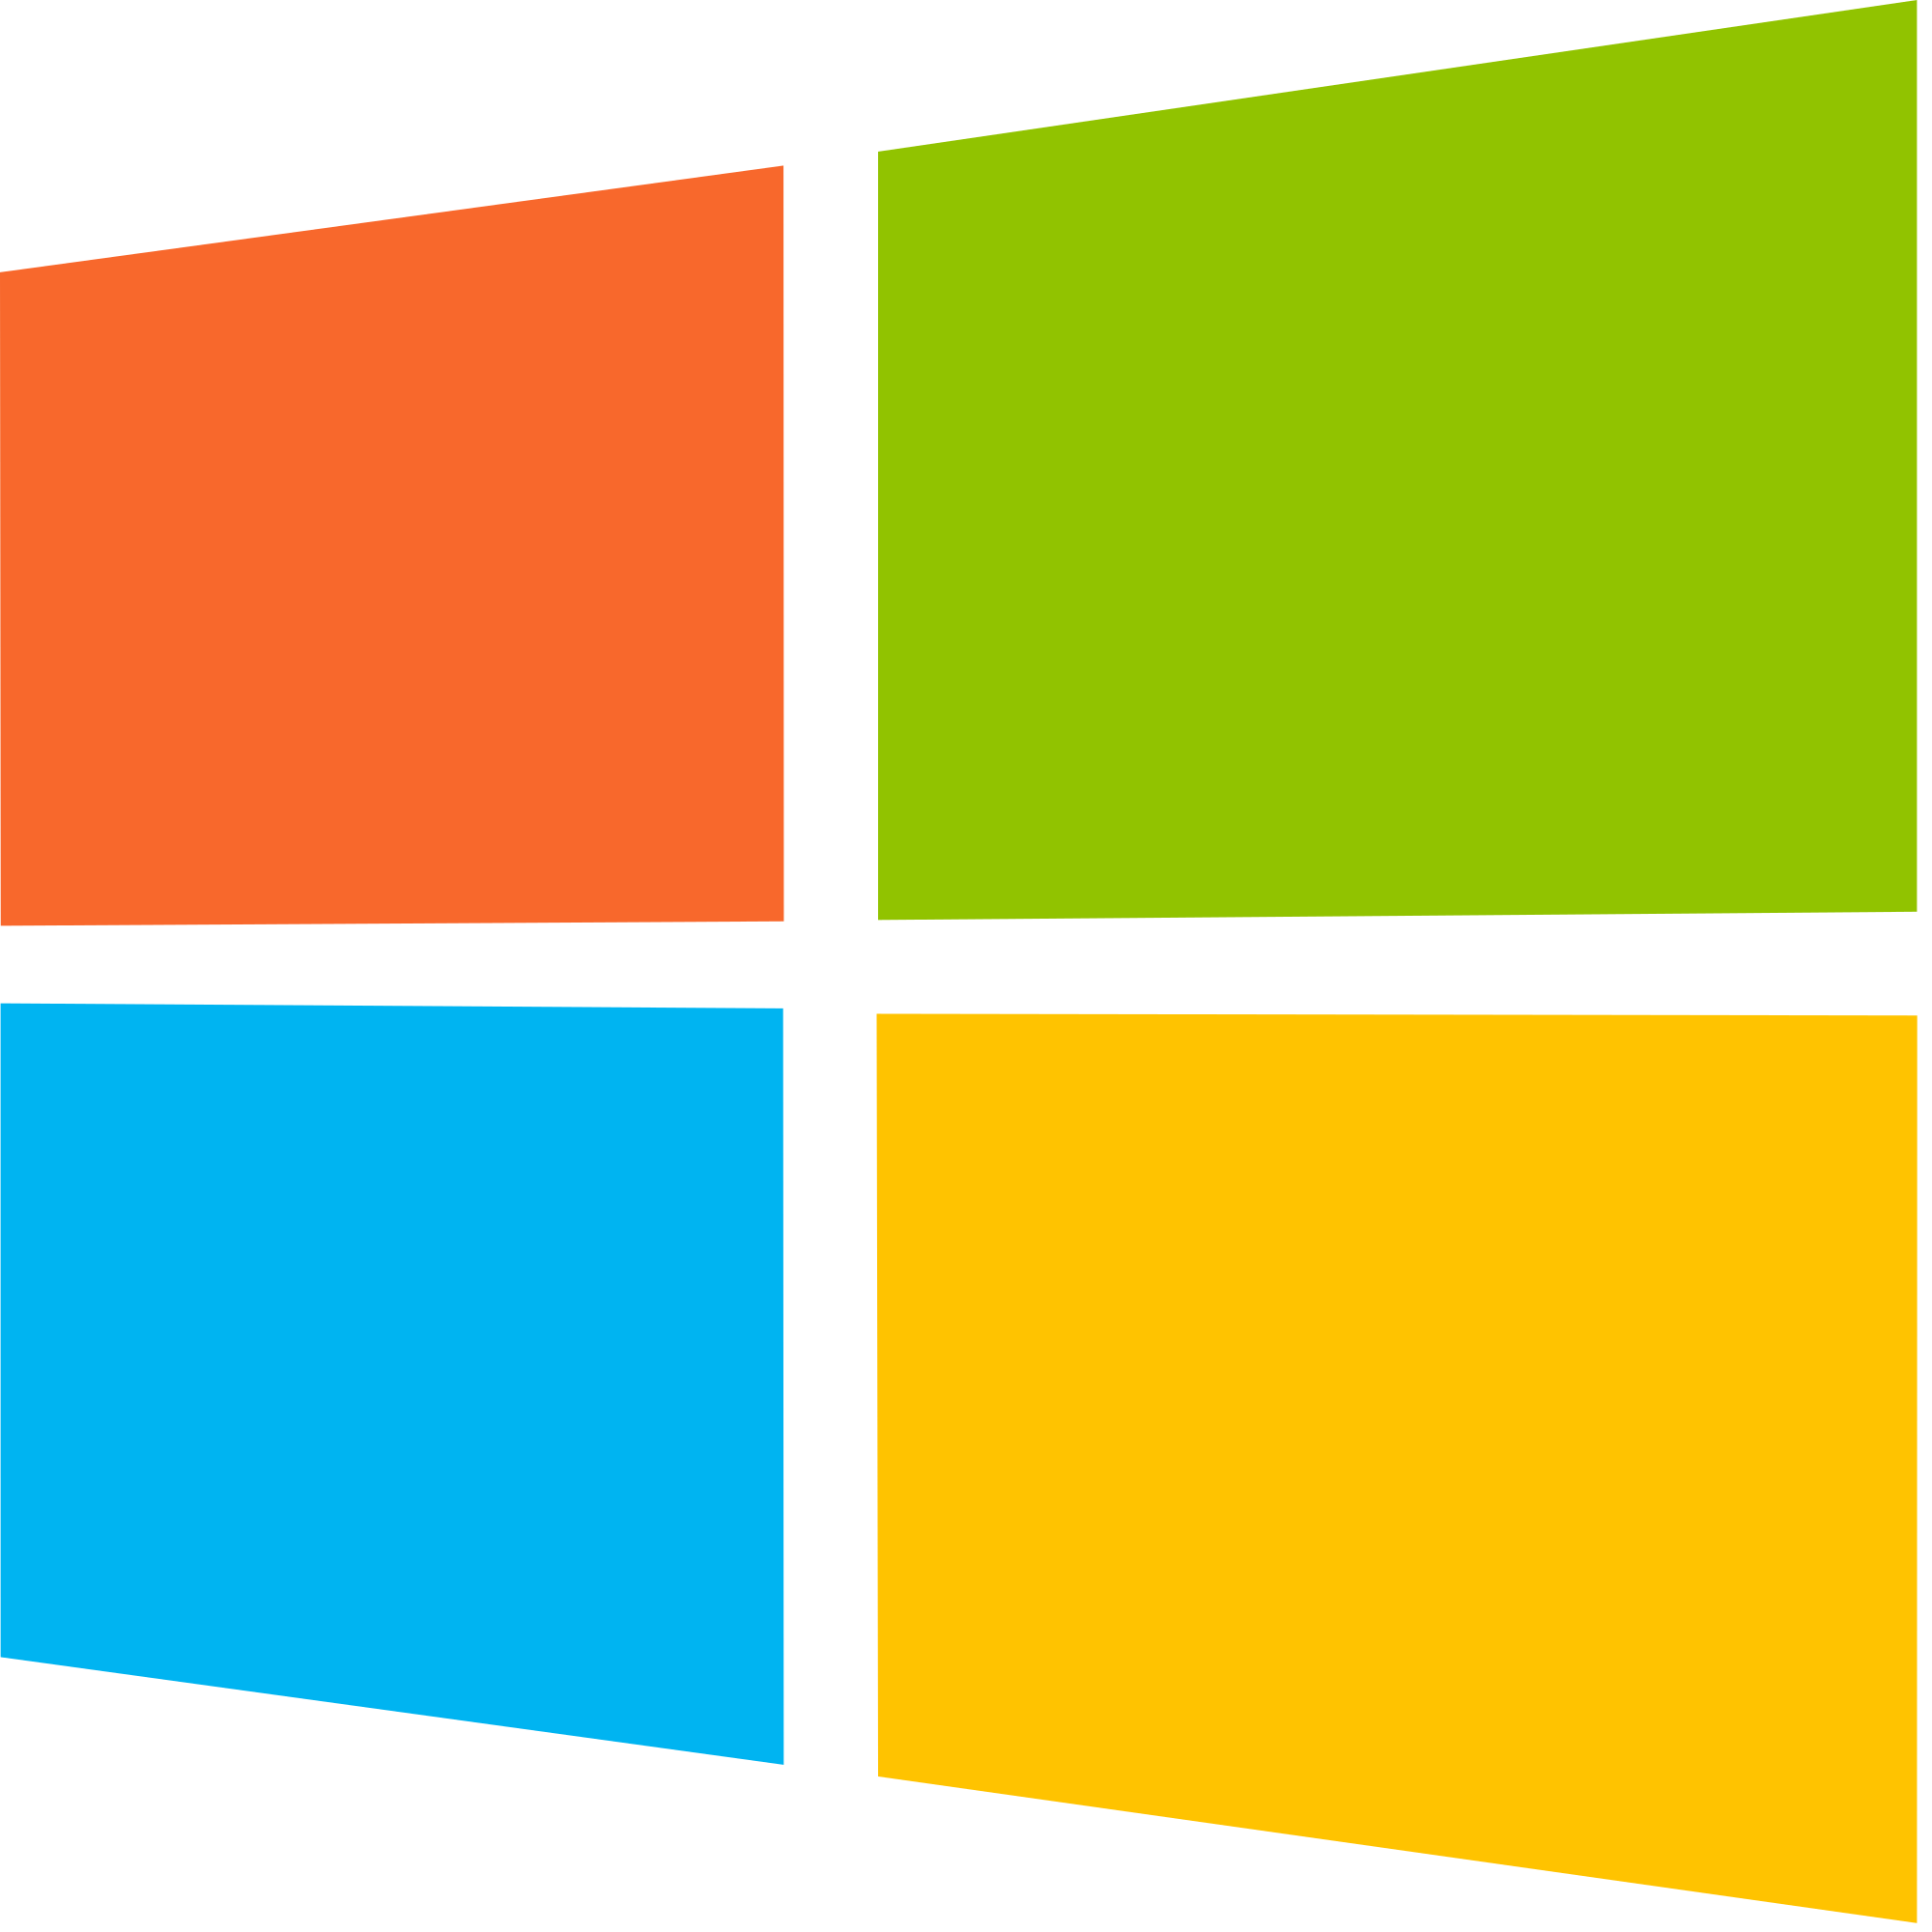 svg to png windows